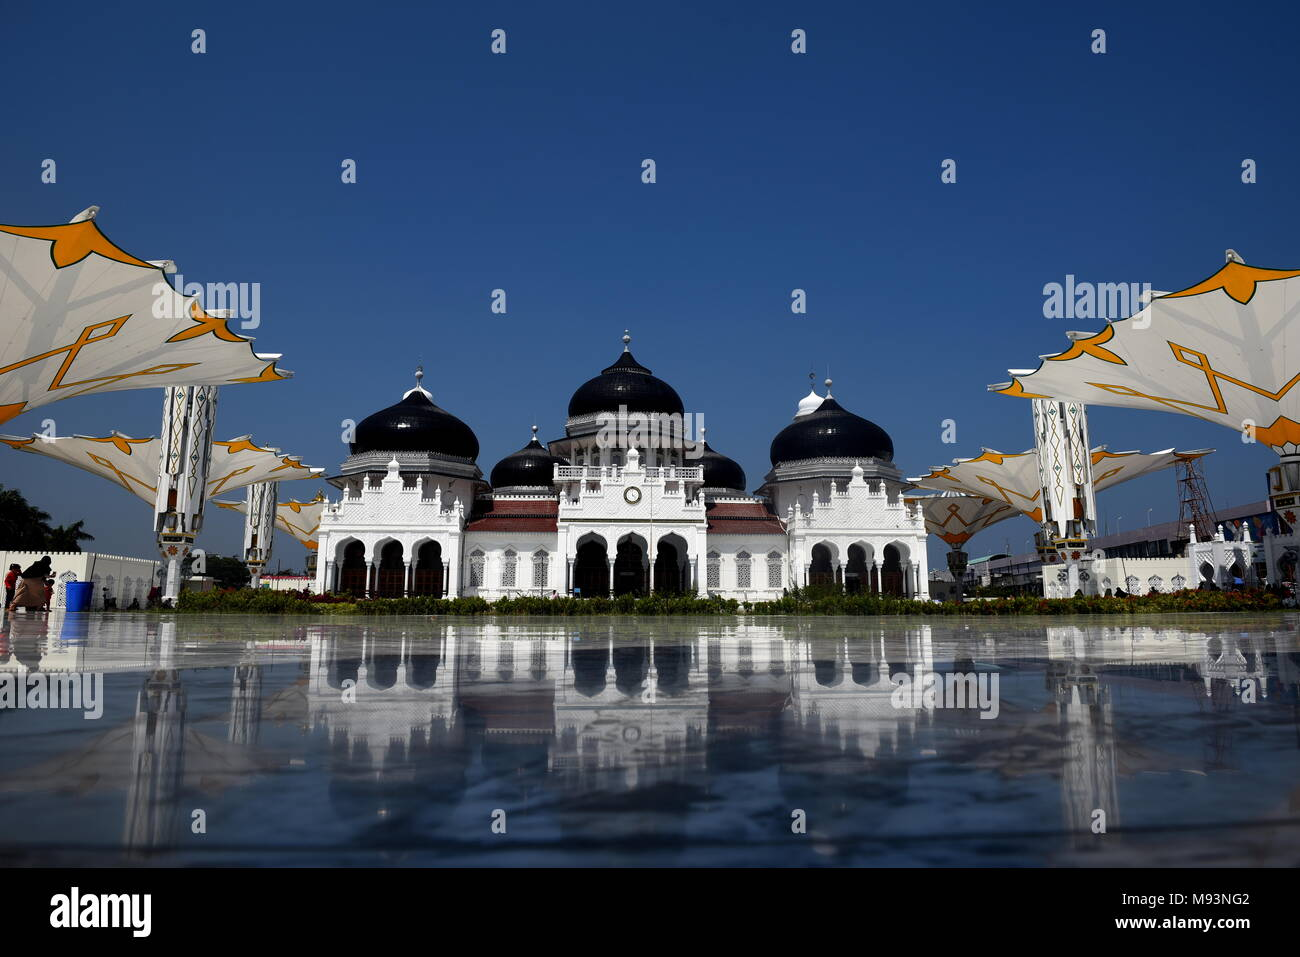 Baiturrahman Grand Mosque is located in the heart of Banda Aceh City. Indonesia Stock Photo